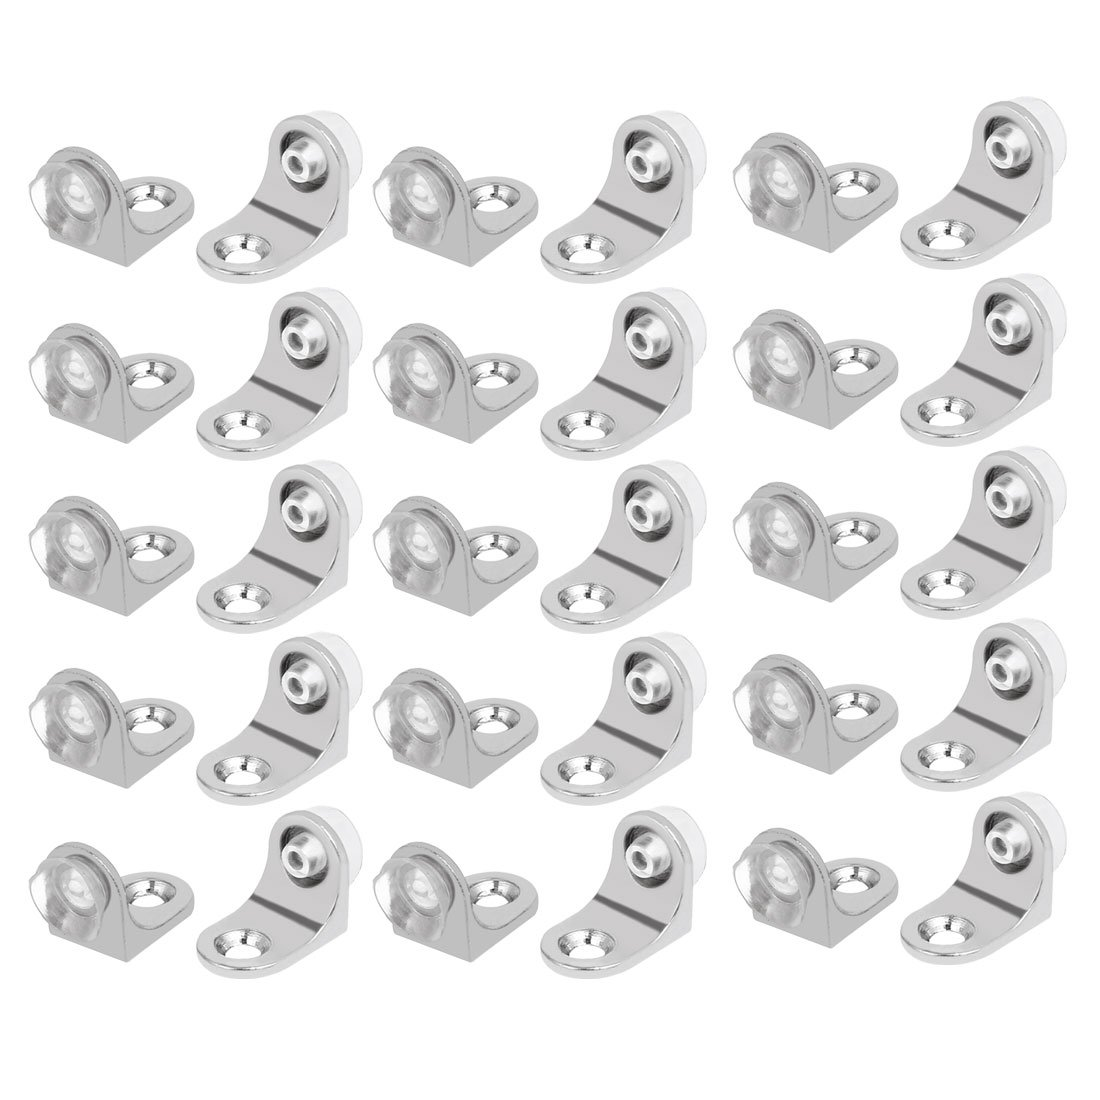 uxcell Stainless Steel 90 Degree Angle Glass Shelf Support Fixing Clip Bracket 30pcs